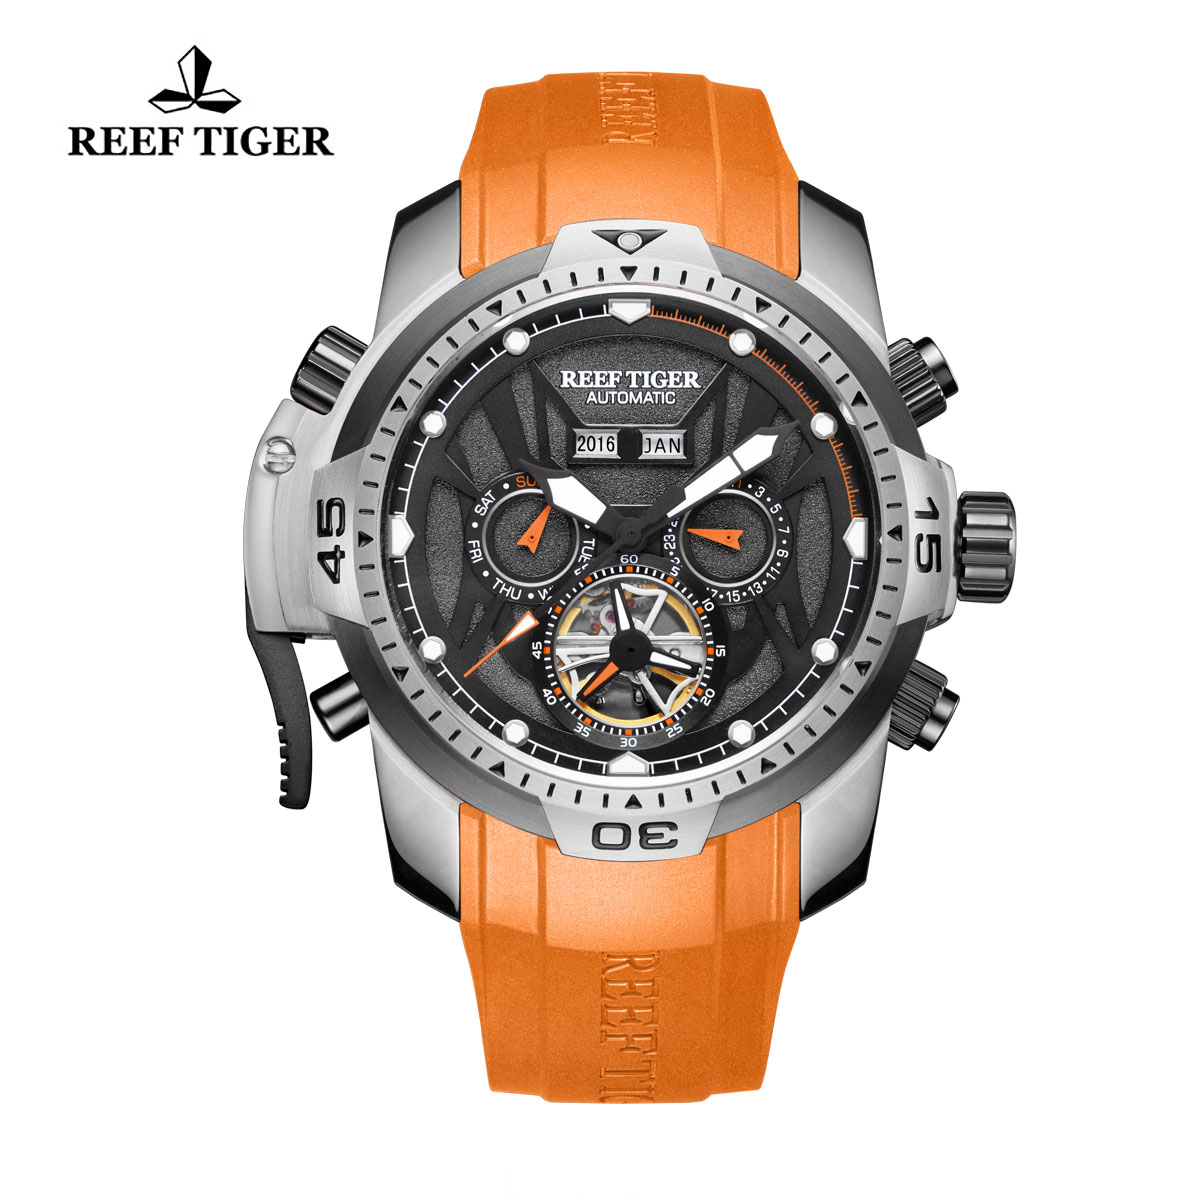 Reef Tiger Transformer Sport Watches Complicated Watch Steel Case Orange Rubber RGA3532-YBBR